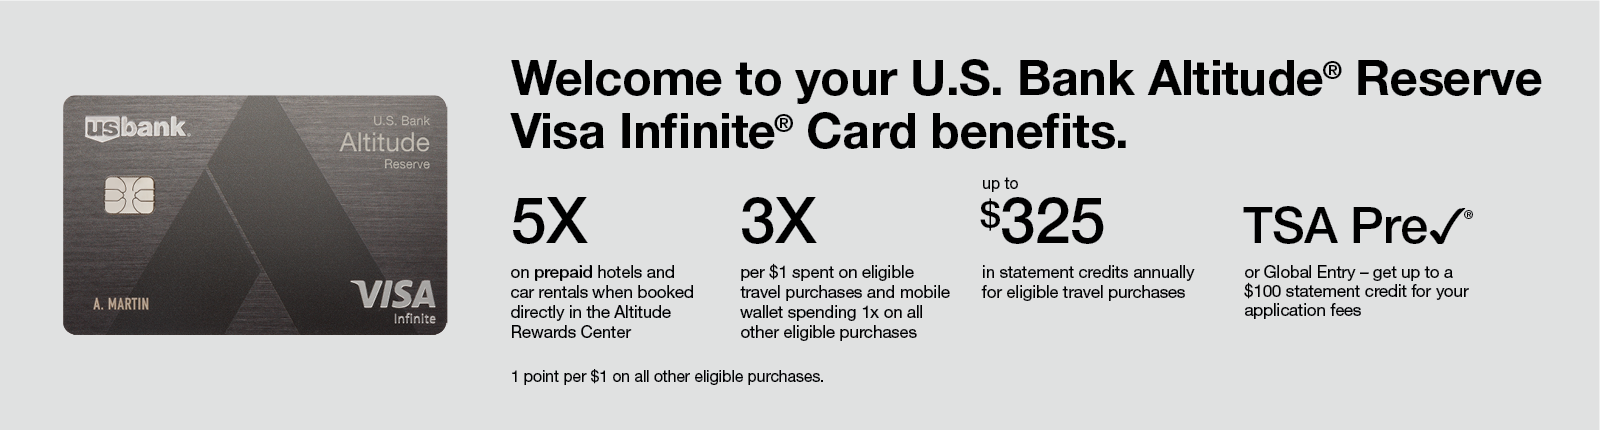 Welcome to your U.S. Bank Altitude Reserve Visa Infinite Card Benefits